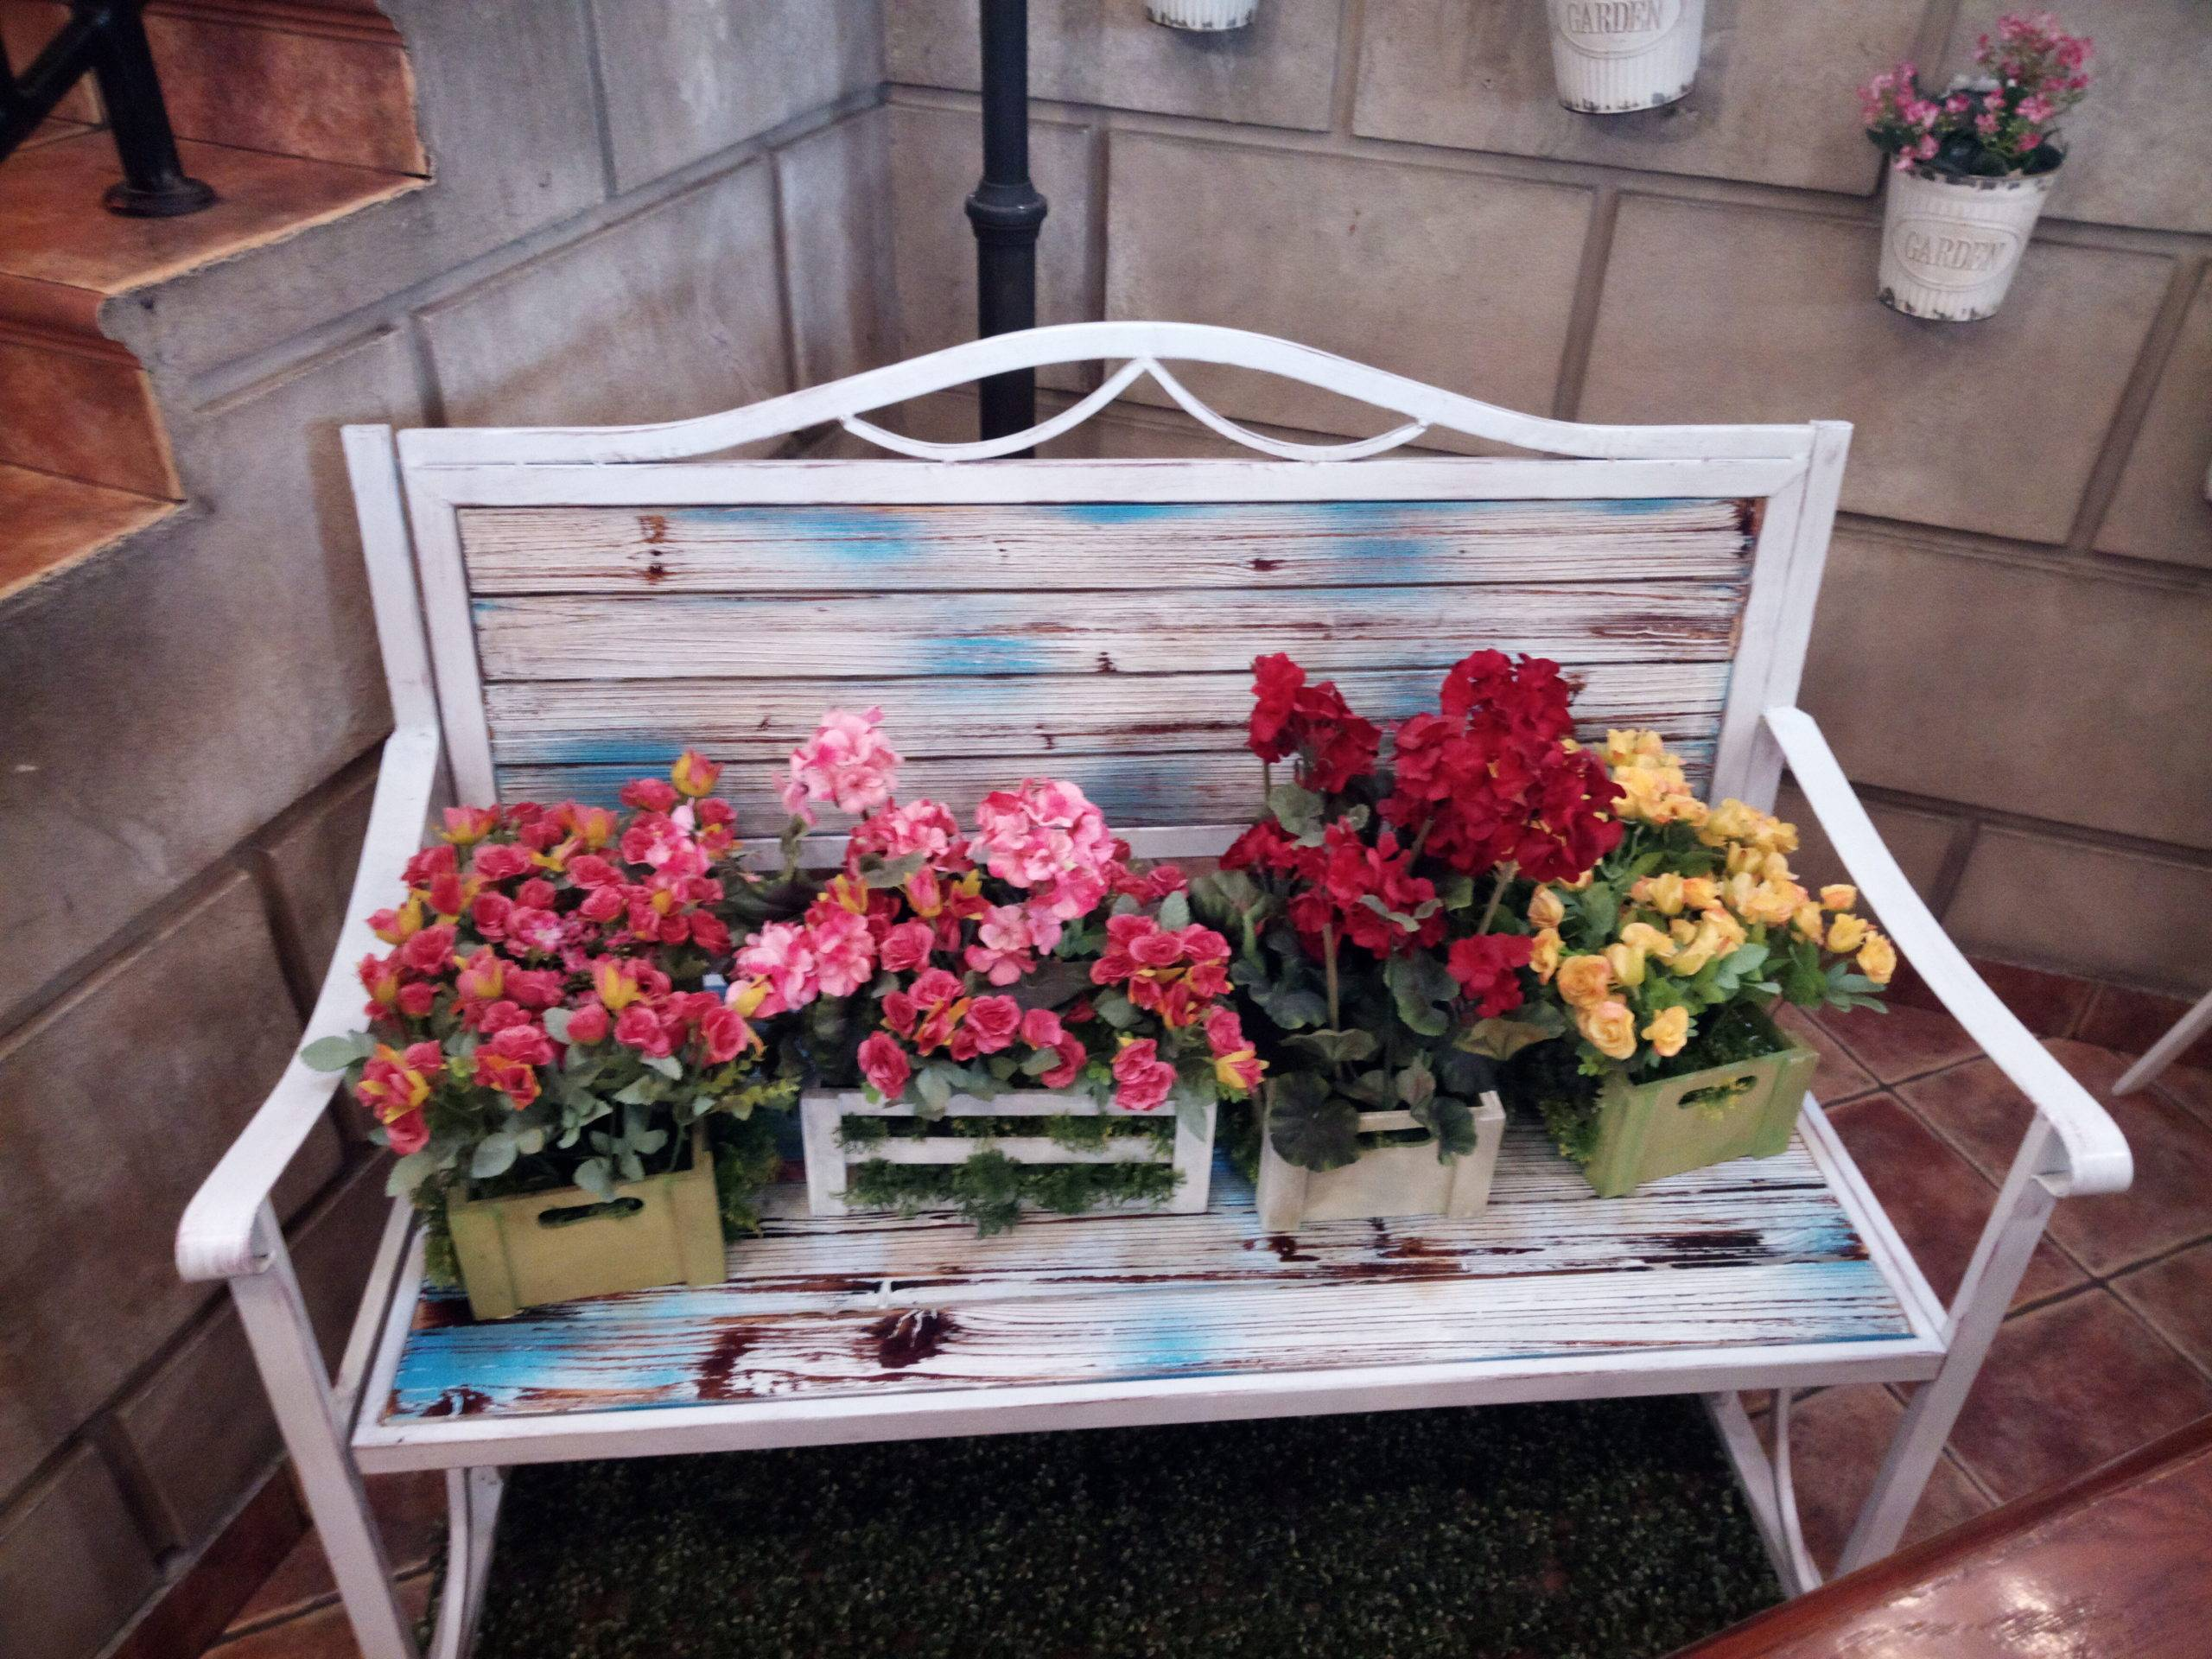 Flowers in square boxes on top of white bench